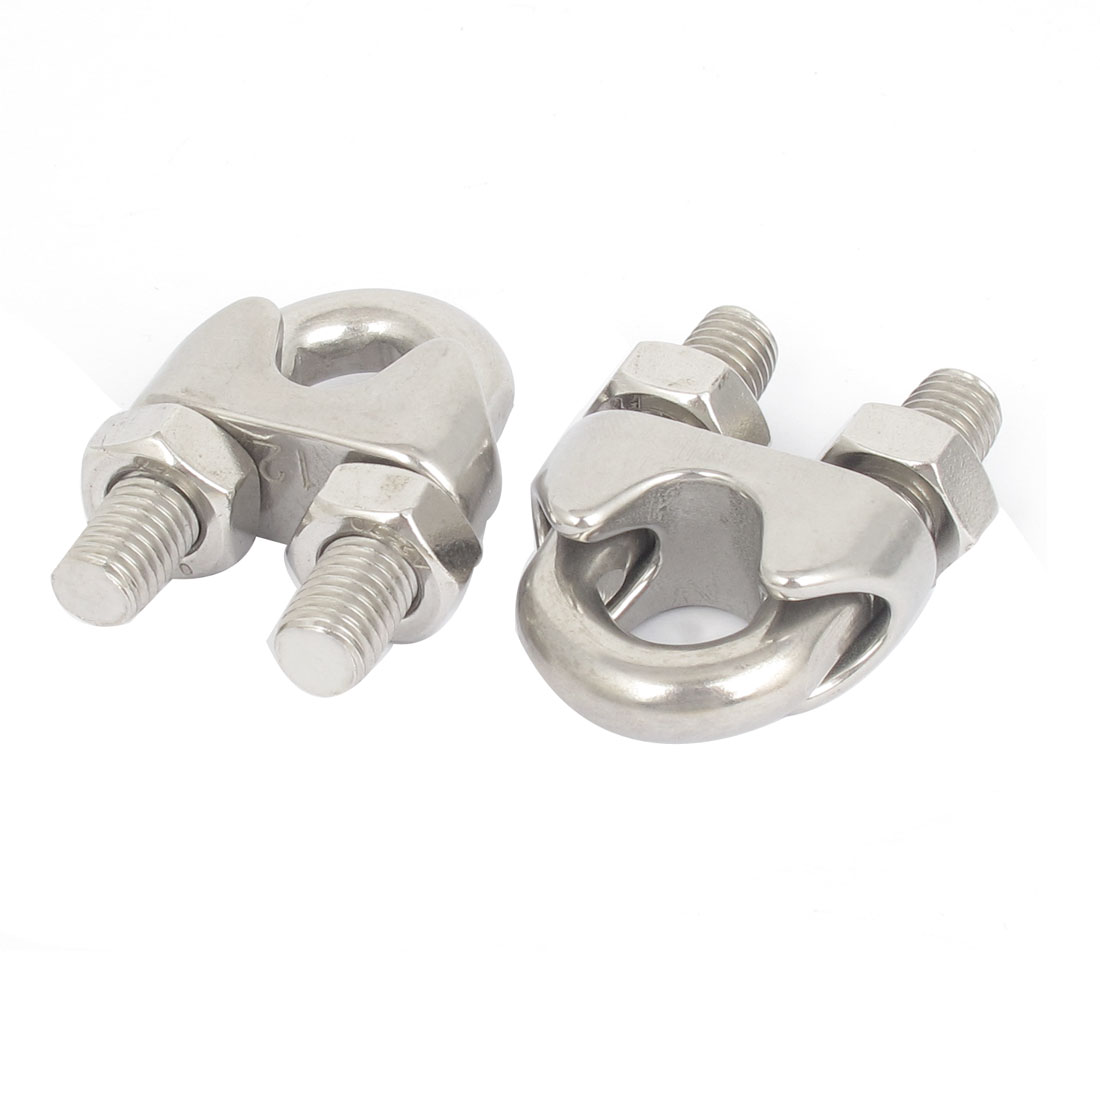 "12mm 1/2"" Stainless Steel Wire Rope Cable Clamp Clips 2pcs"